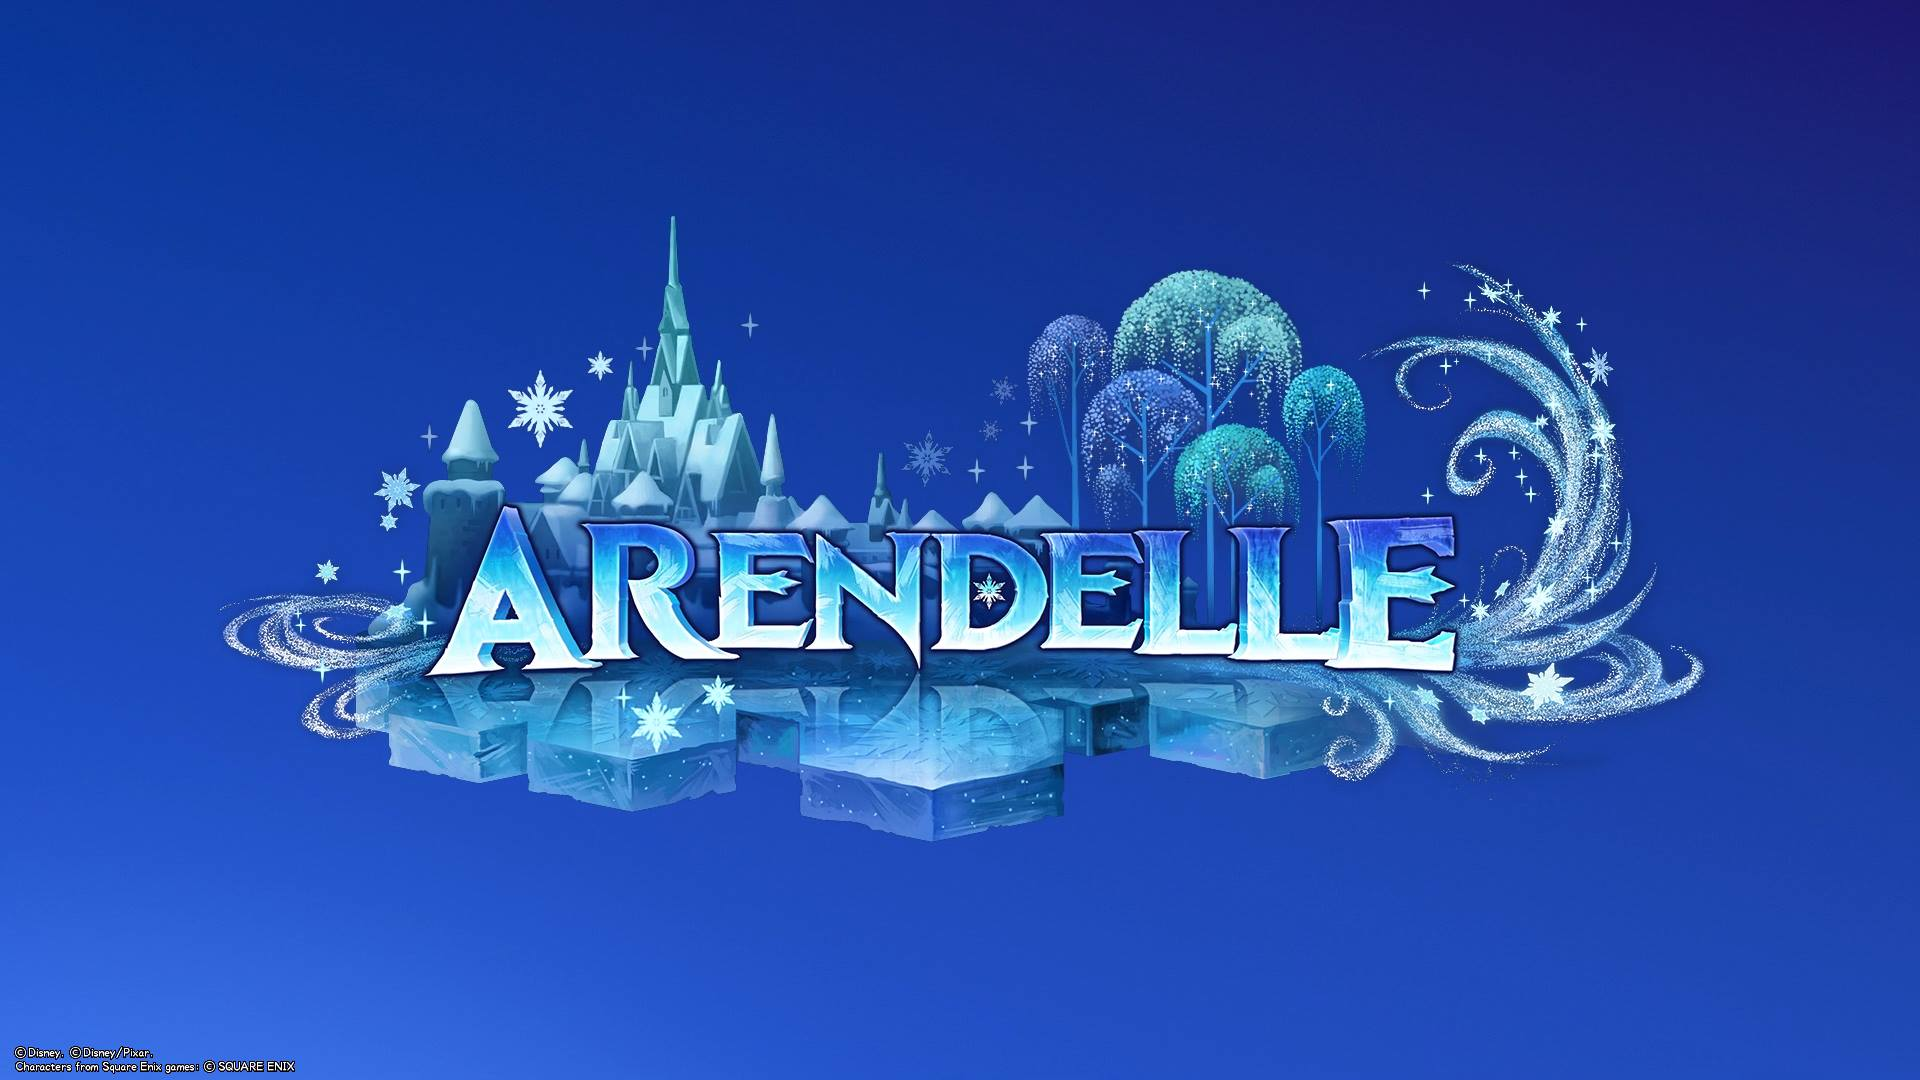 The 5th world that unlocks in Kingdom Hearts 3 is Arendelle.